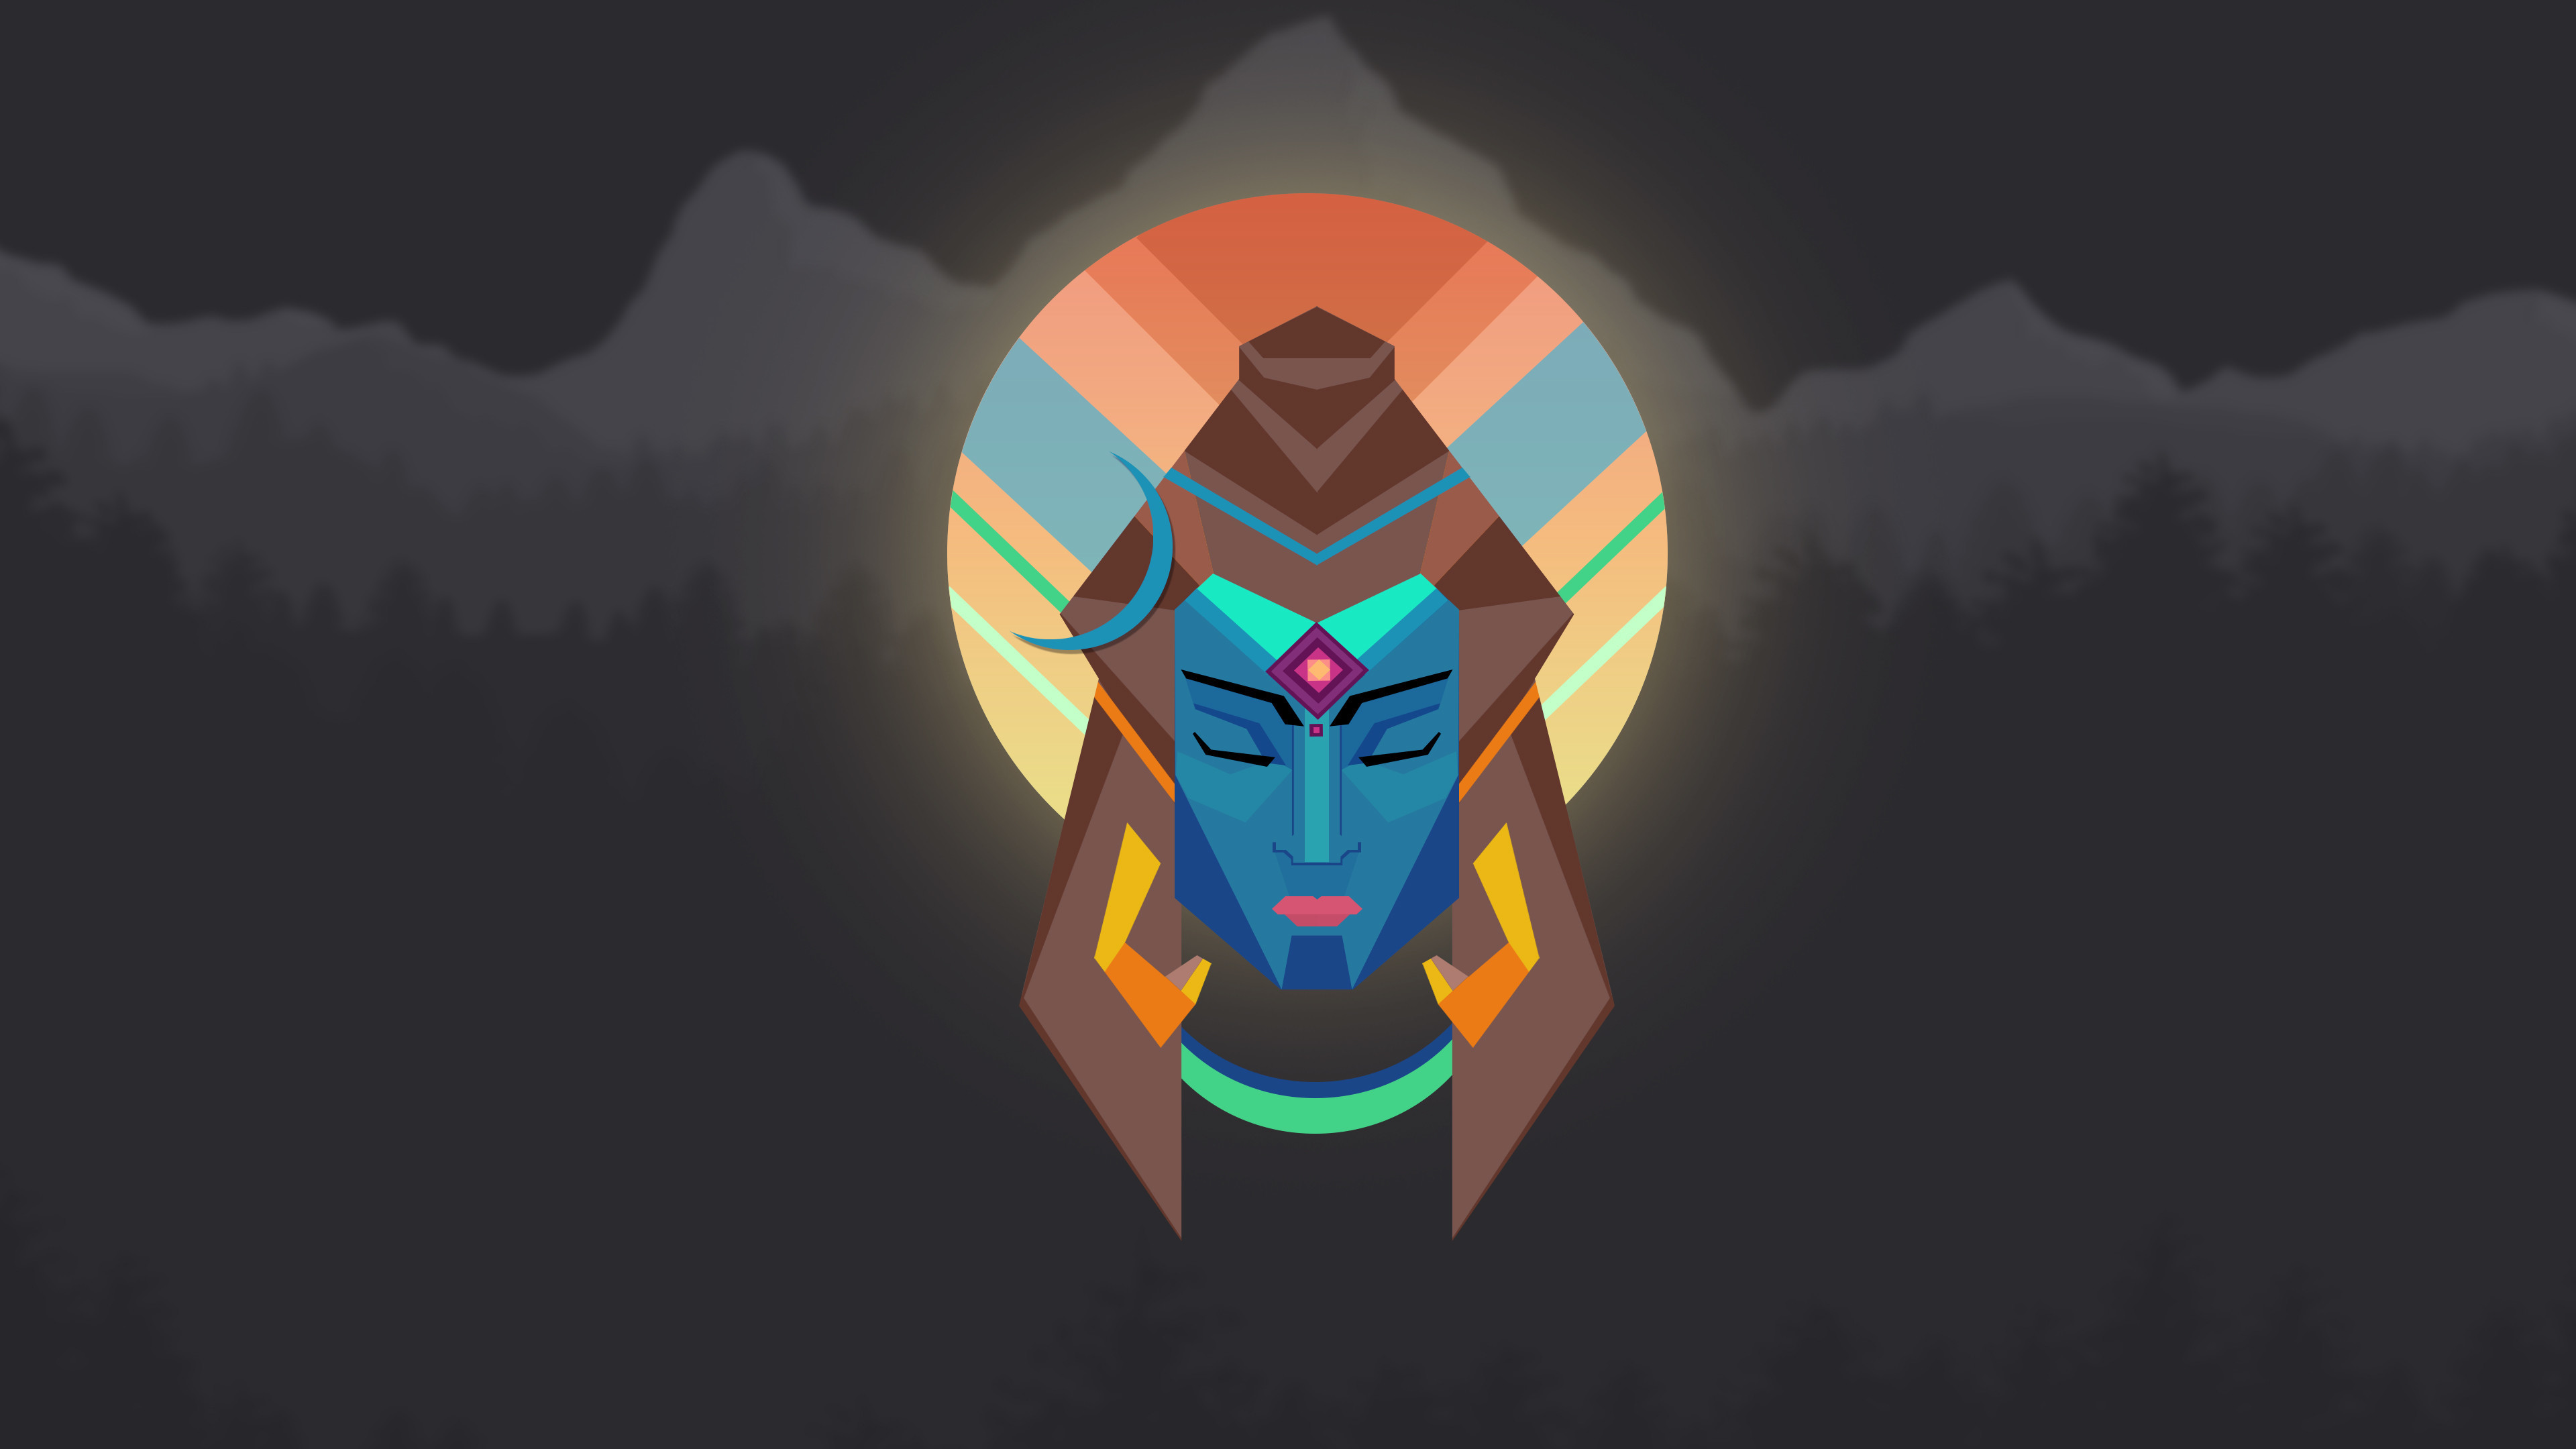 3840x2160  Lord Shiva Minimal Wallpaper - 4K